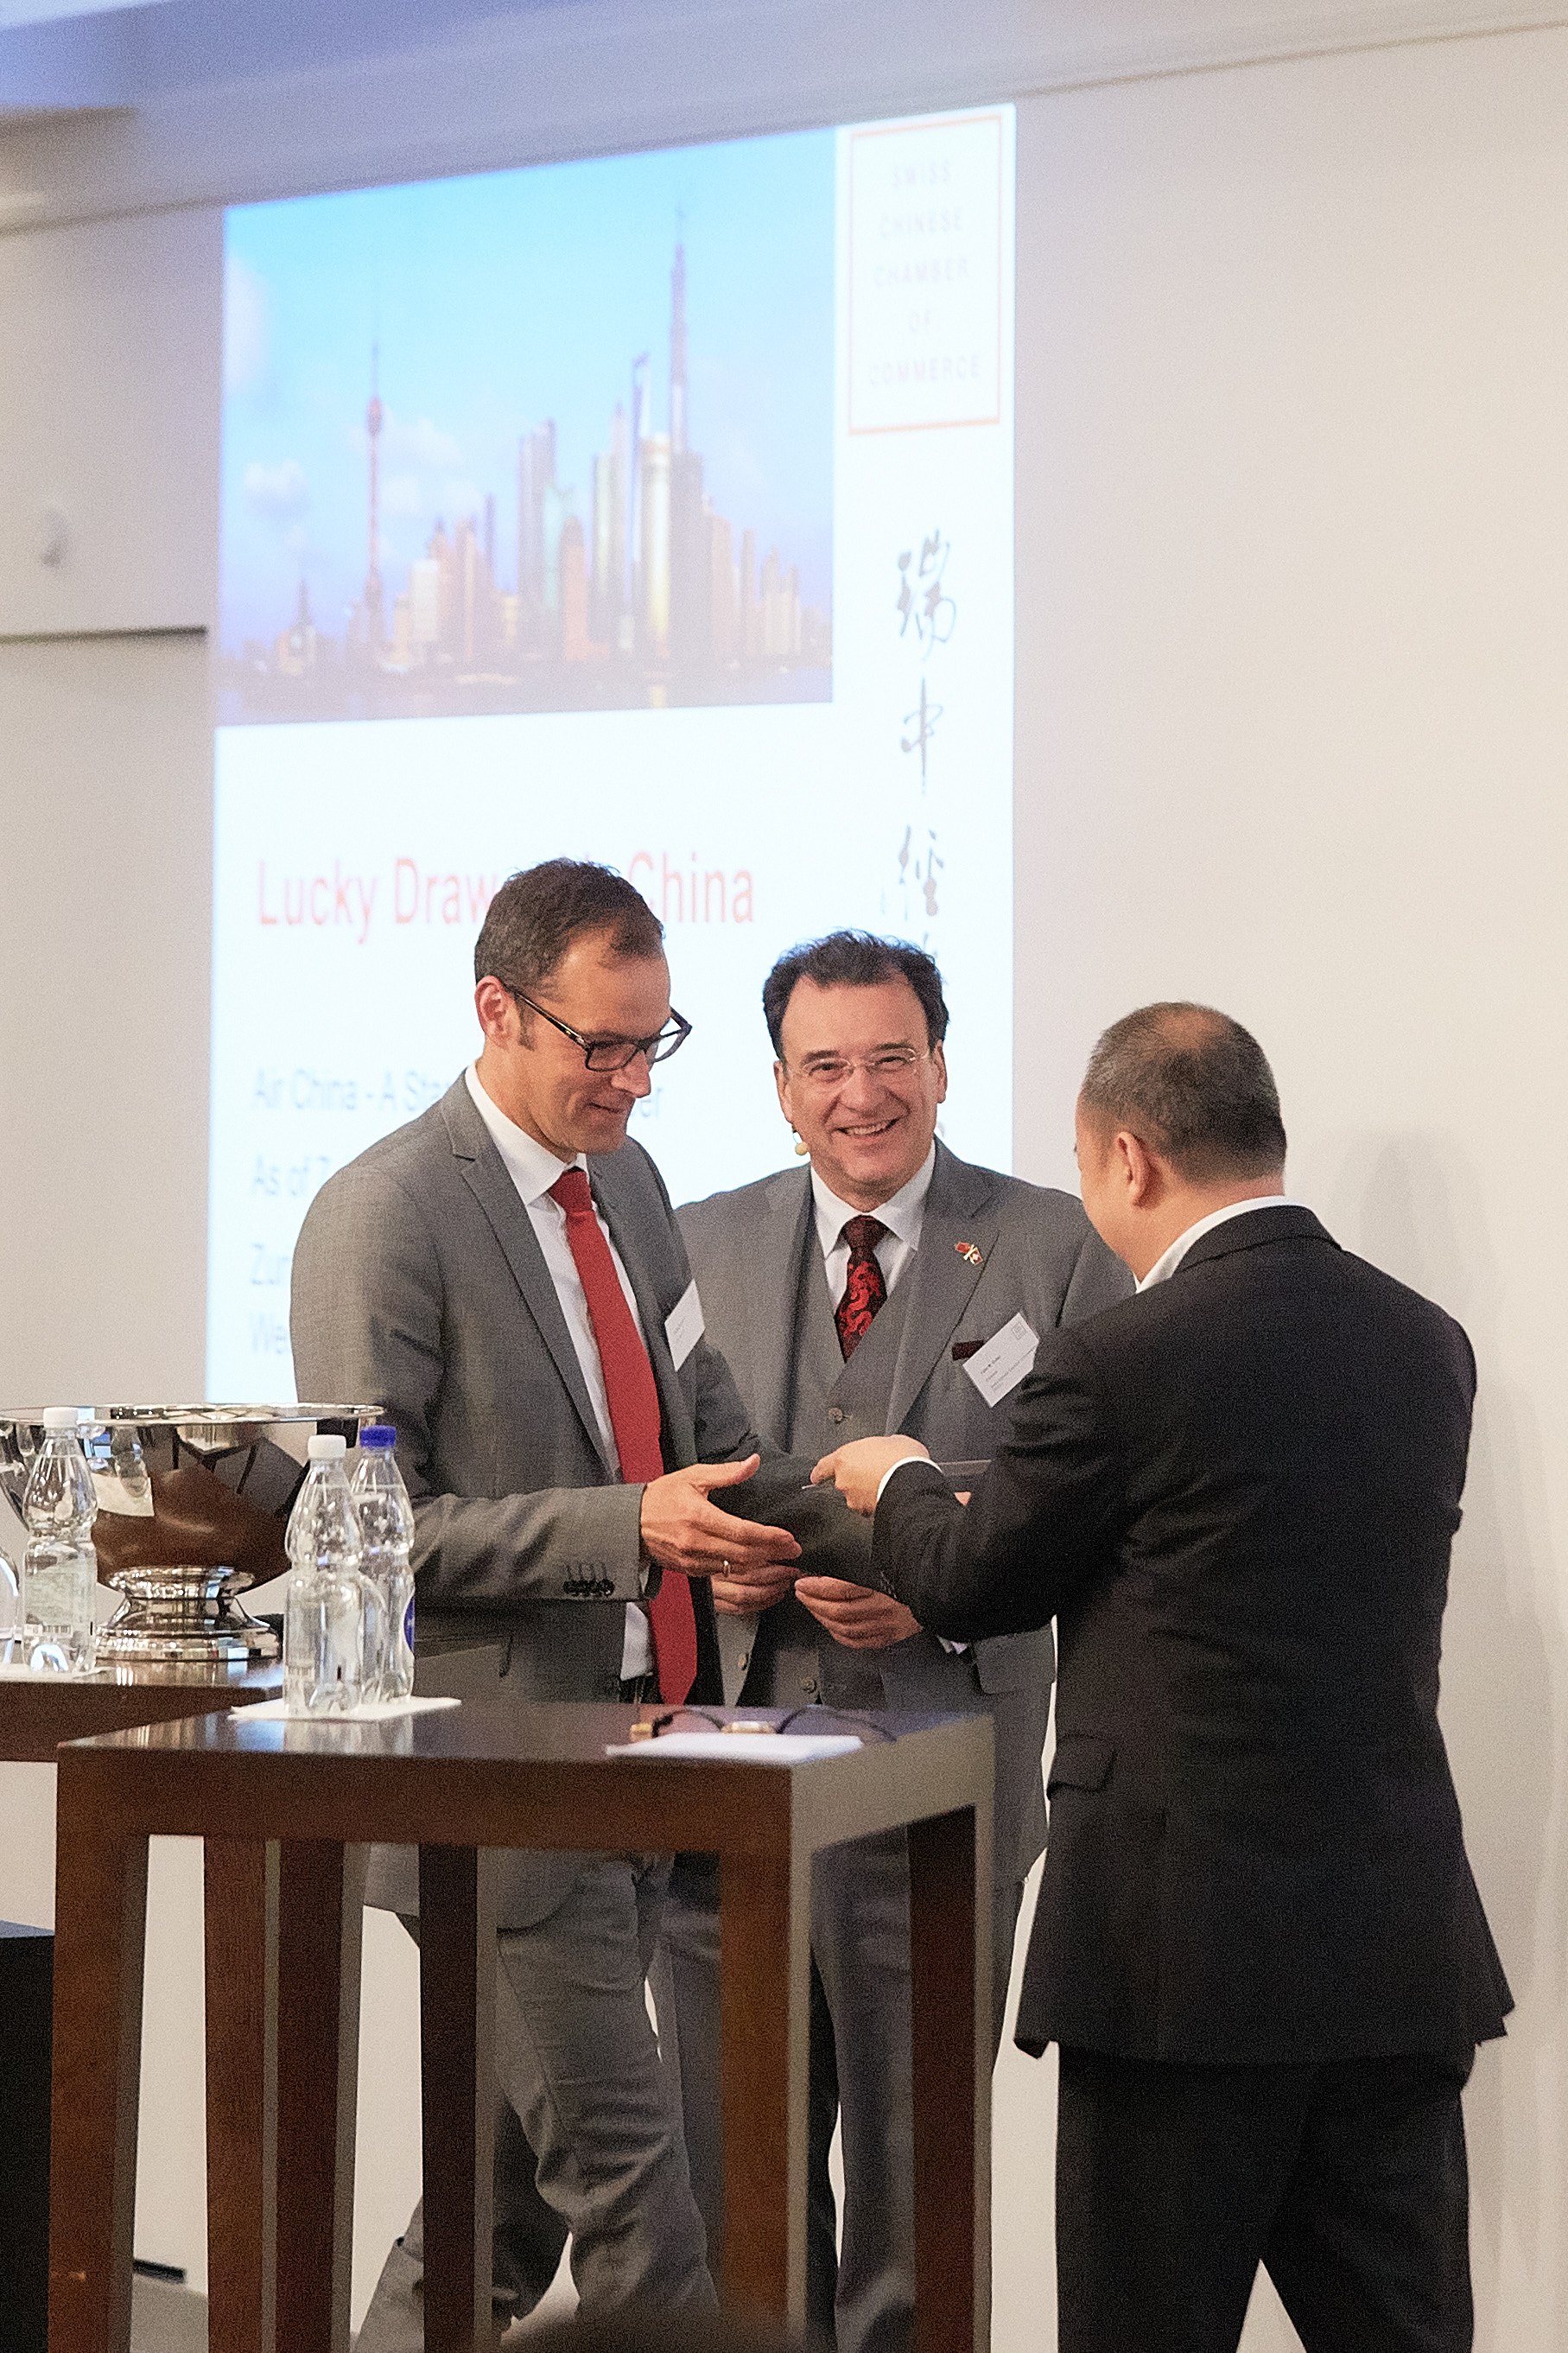 Lucky Draw by Air China & Closing by the SCCC President Felix Sutter